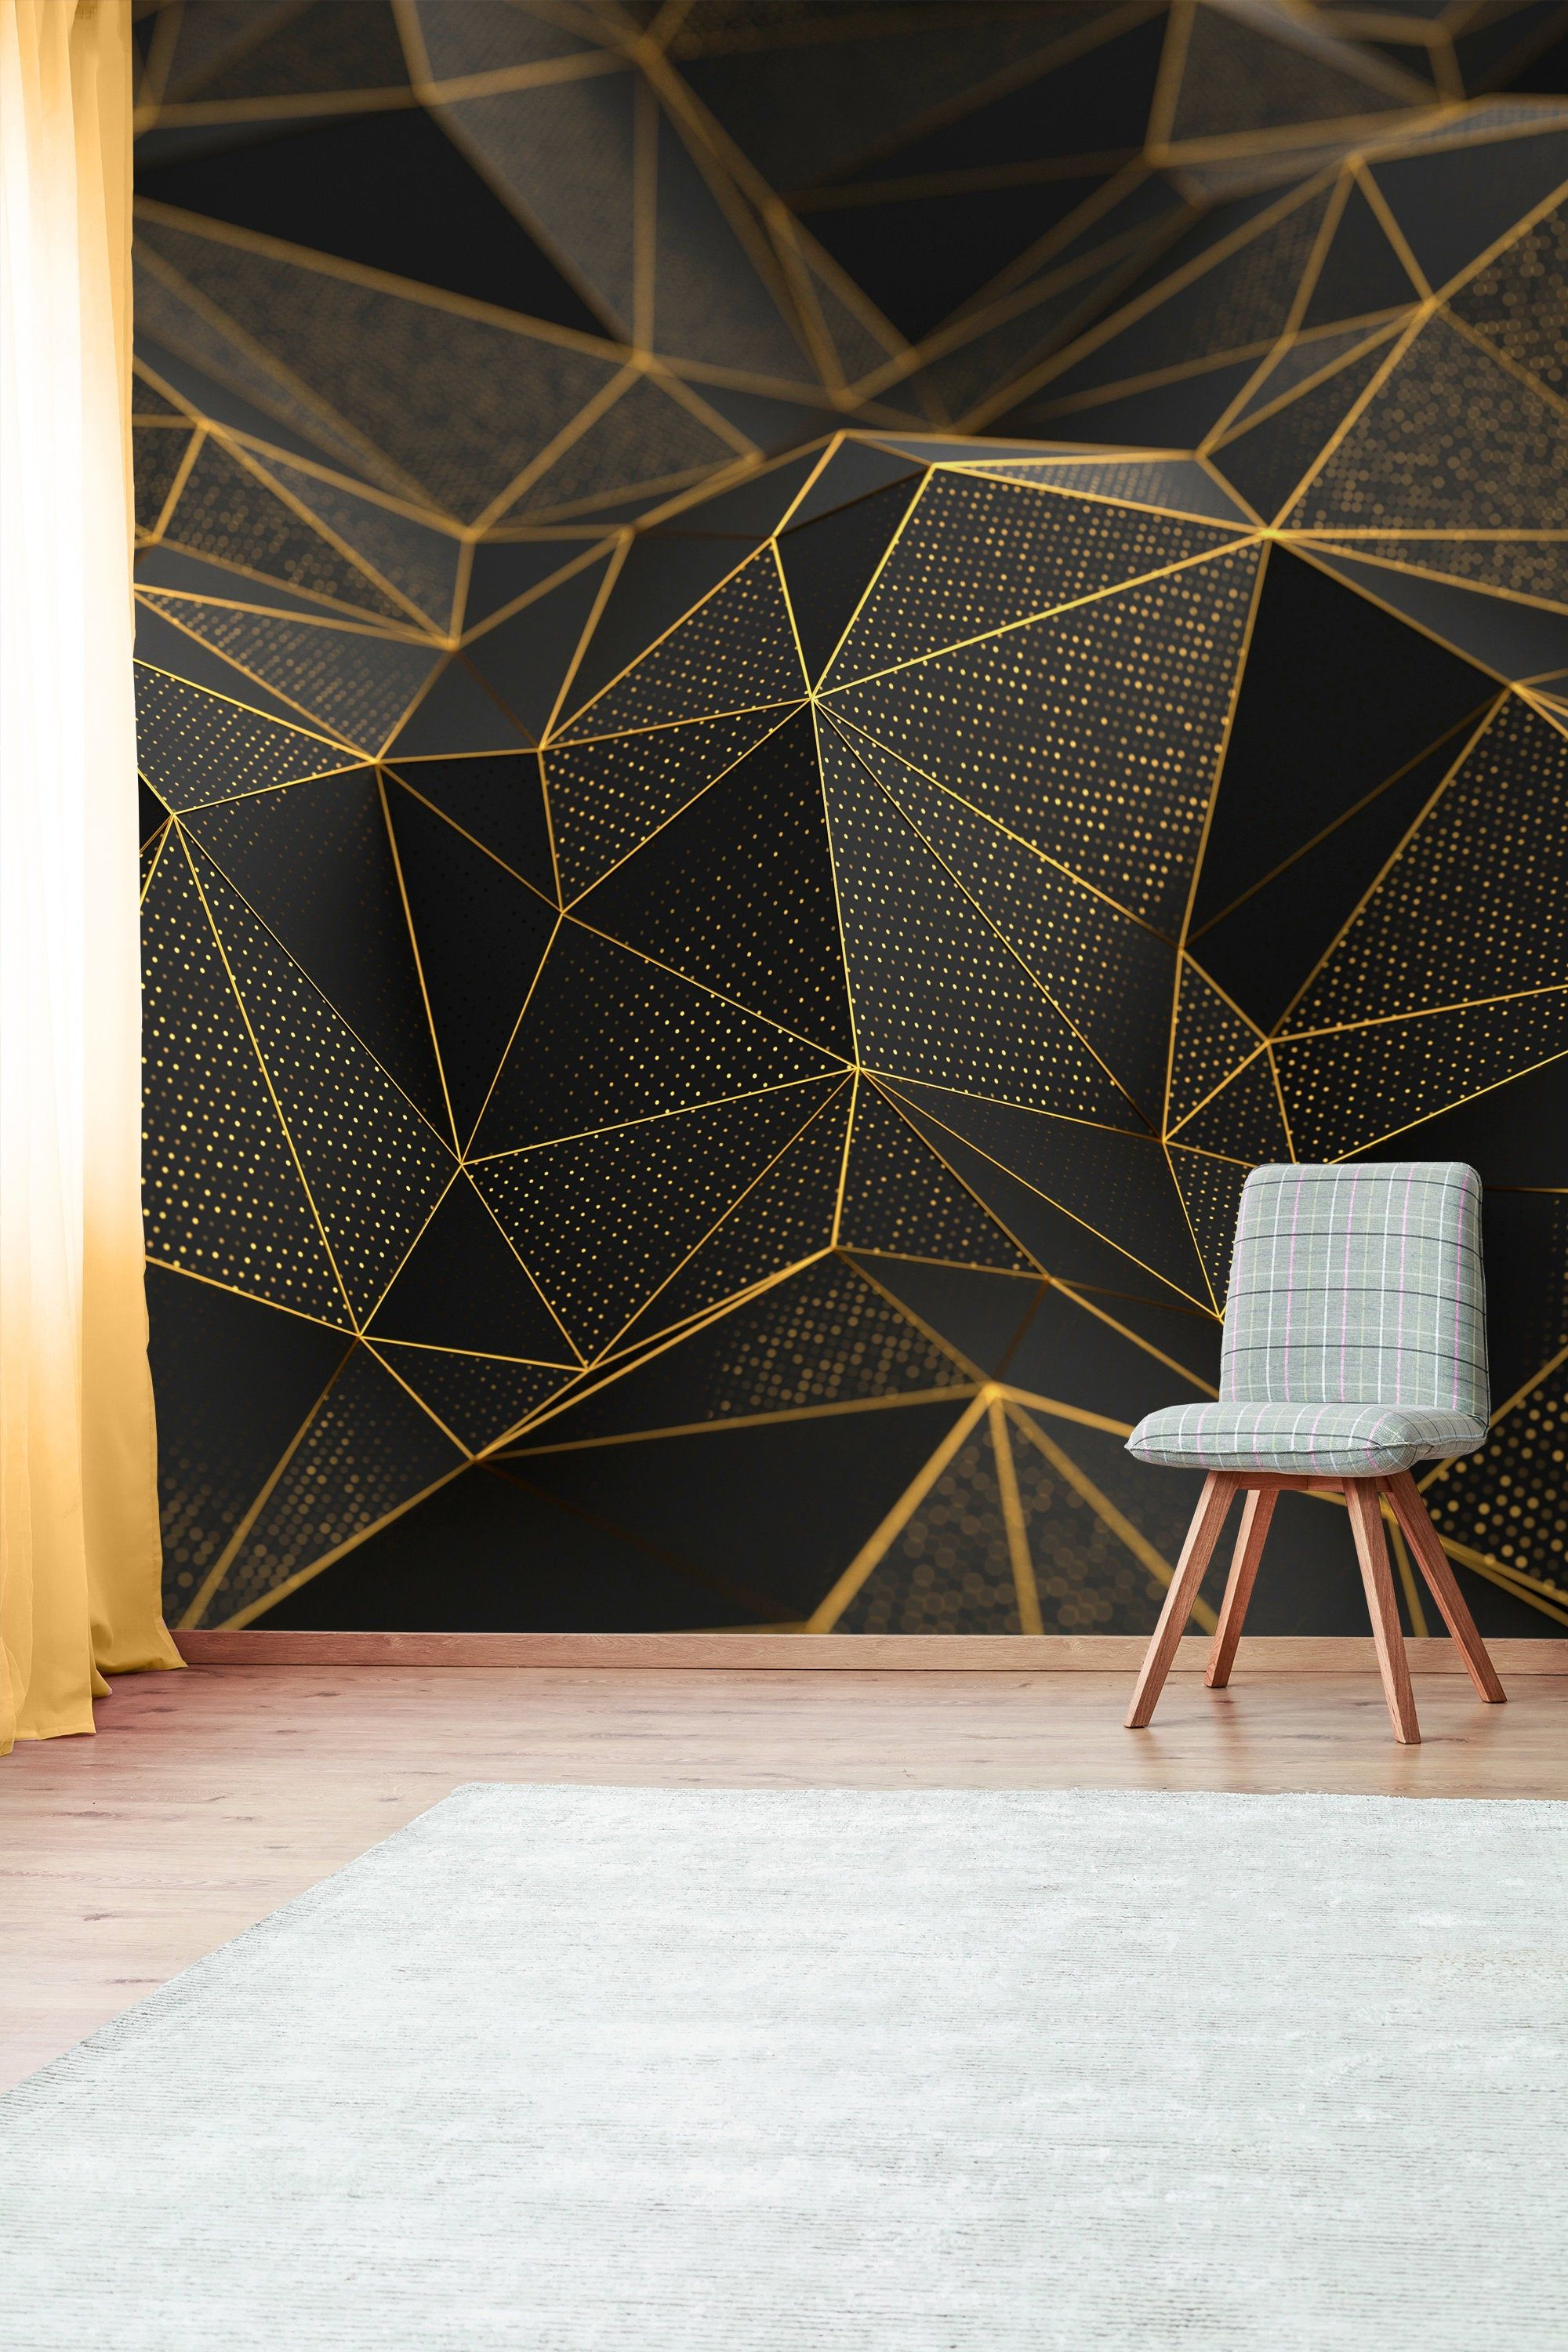 Geometric Wallpaper With Gold And Black Shapes Self Adhesive Peel And Stick Floral Wall Mural Gold Geometric Wallpaper Wall Paint Designs Interior Wall Design